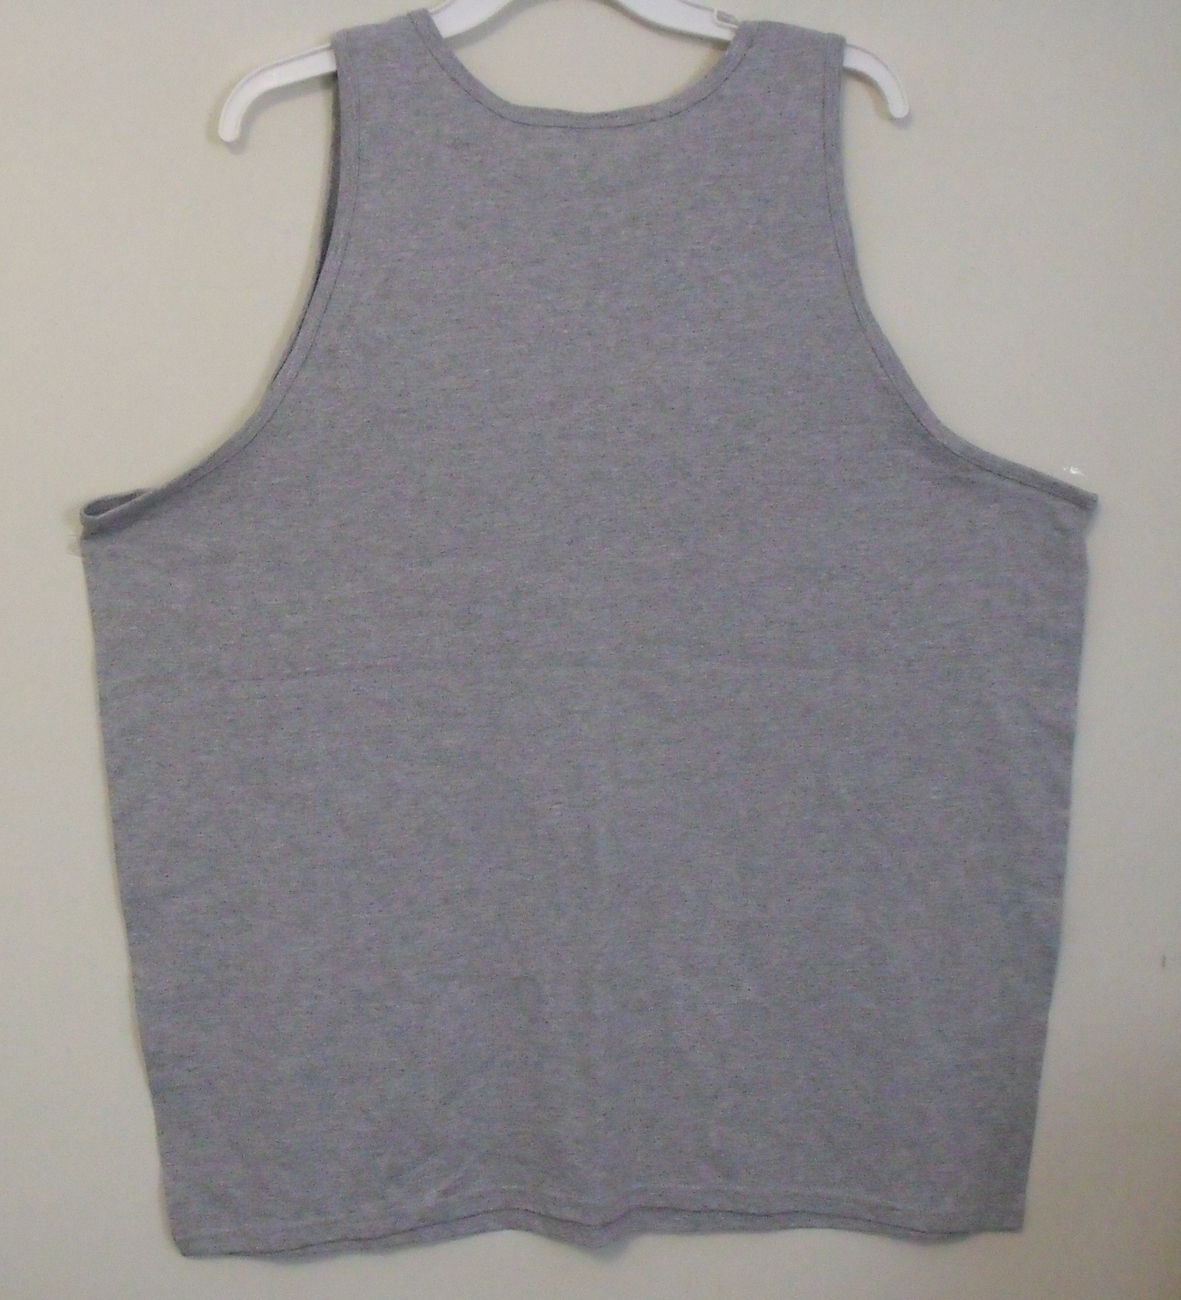 Mens Gildan Gray NWOT Sleeveless Tank Top Size 2XL